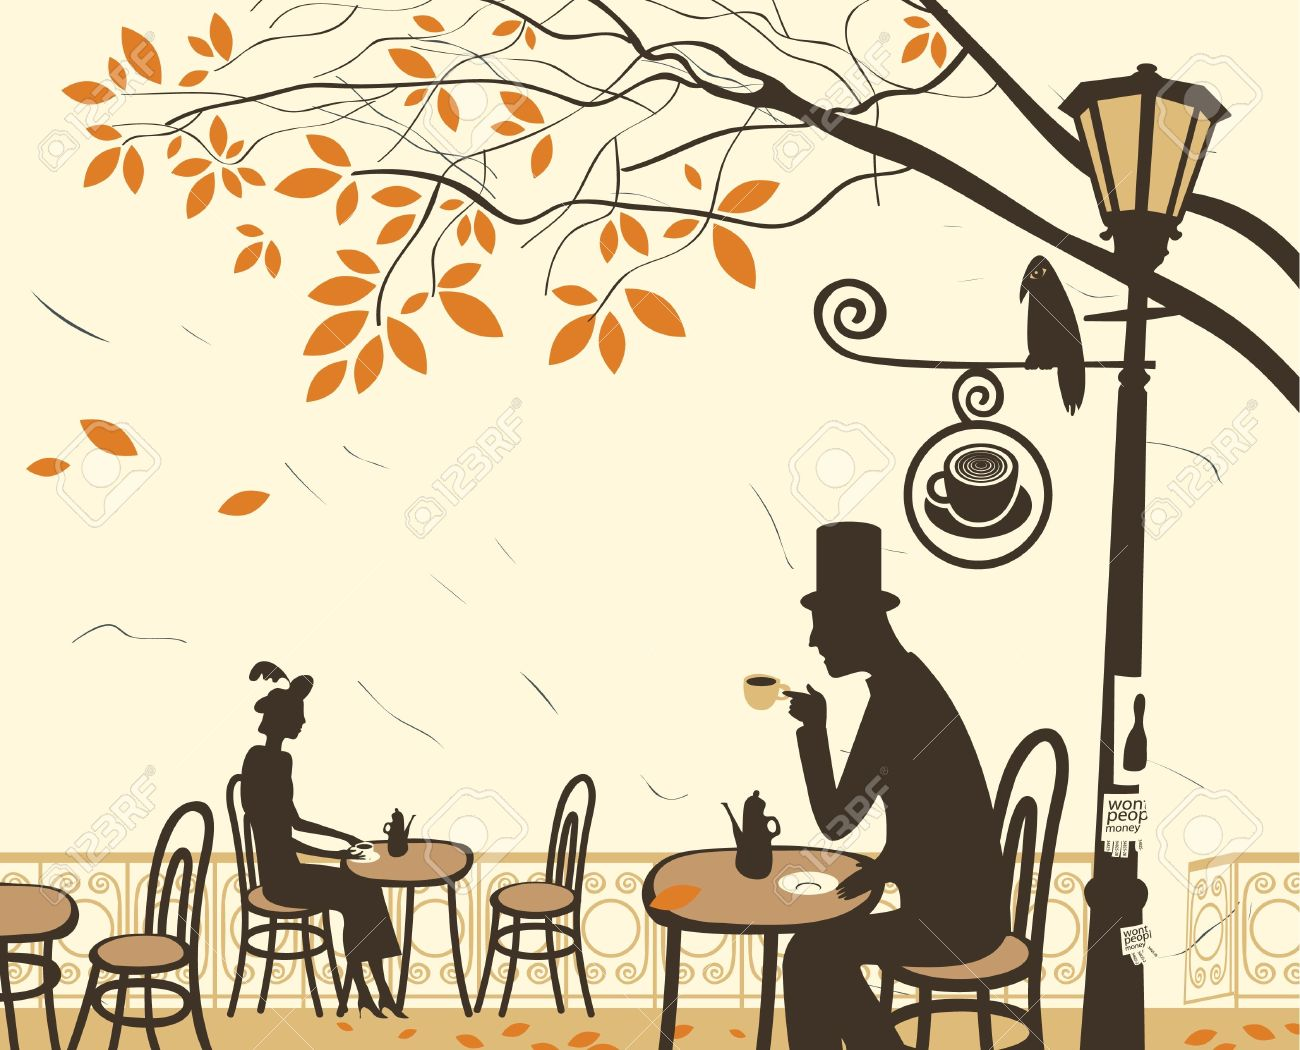 Autumn cafes and romantic relationship between man and woman Stock Vector - 15276292